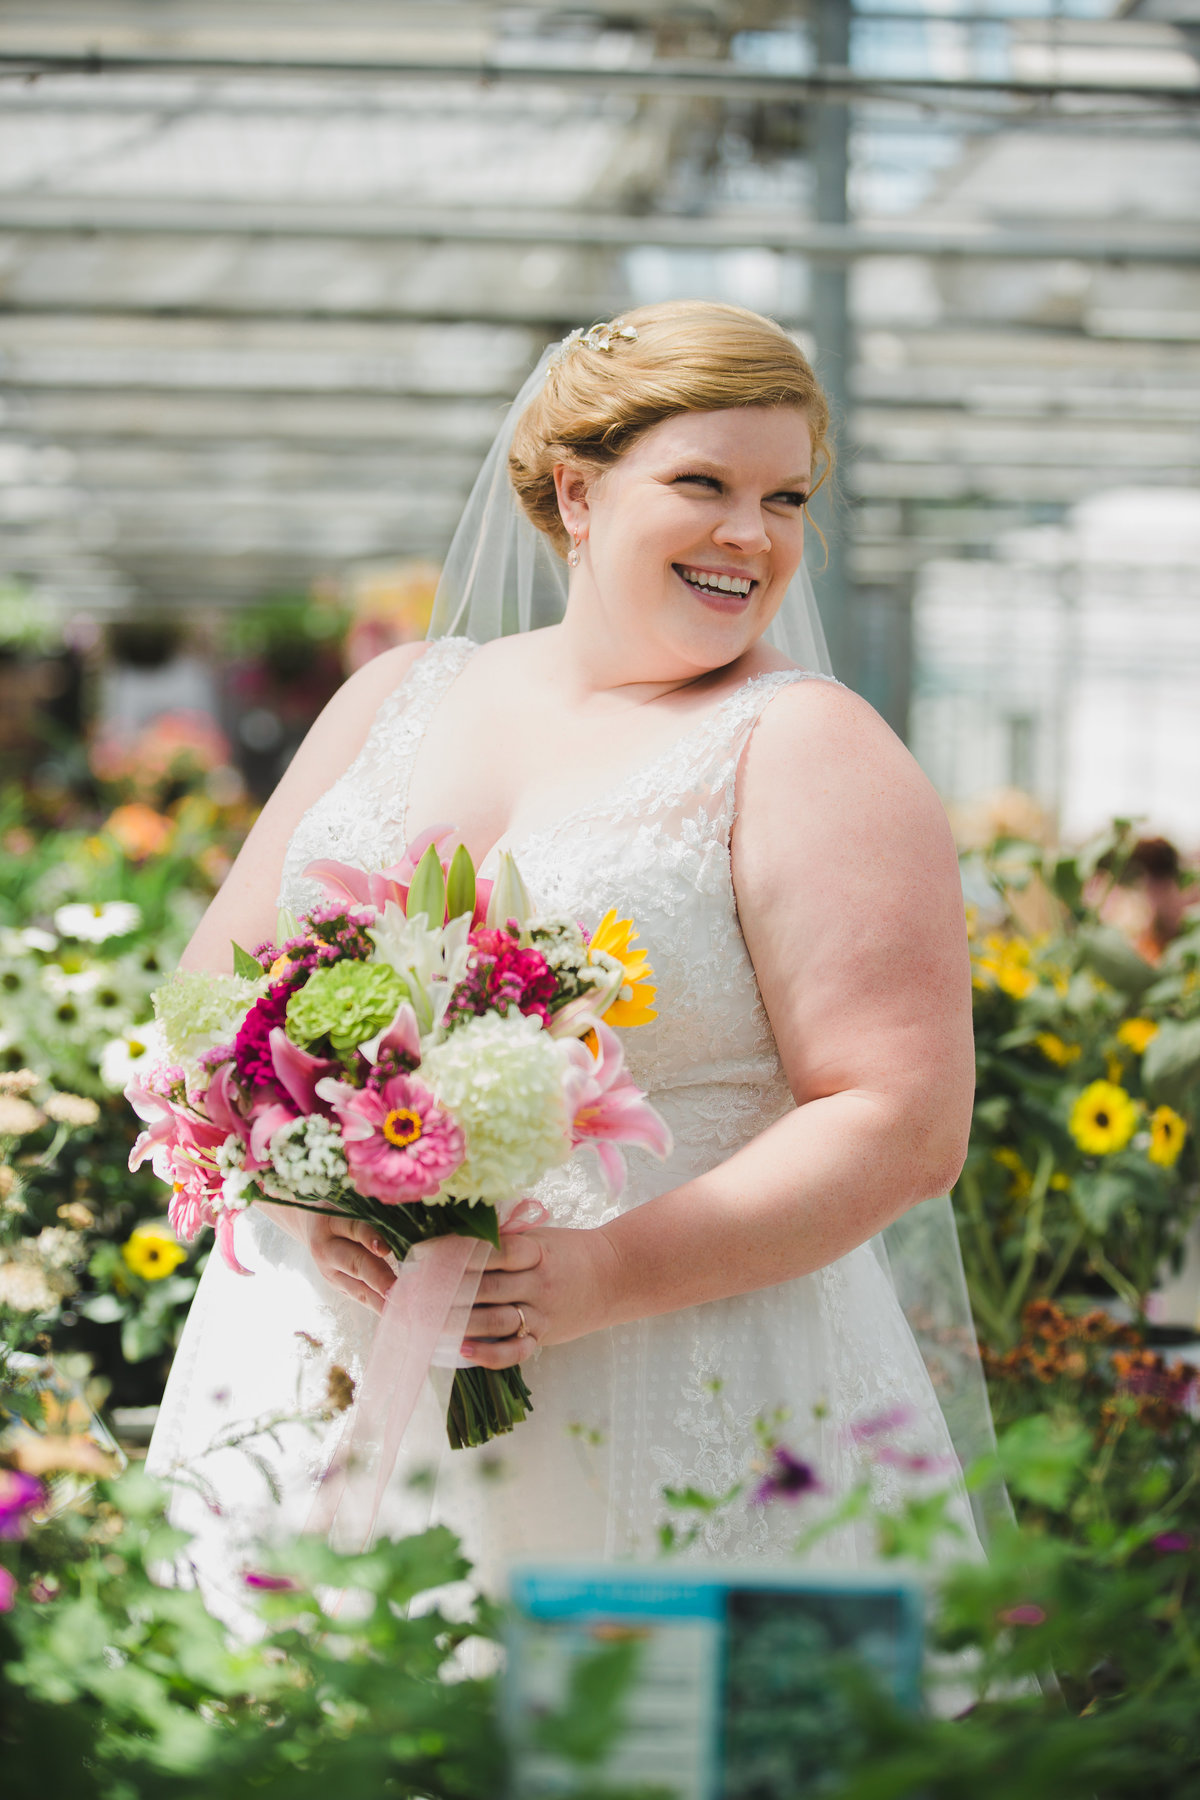 events-by-carianne-event-planner-wedding-planner-outdoor-wedding-mountain-top-wedding-new-england-boston-rhode-island-maine-new-hampshire-robin-fox-photography 1